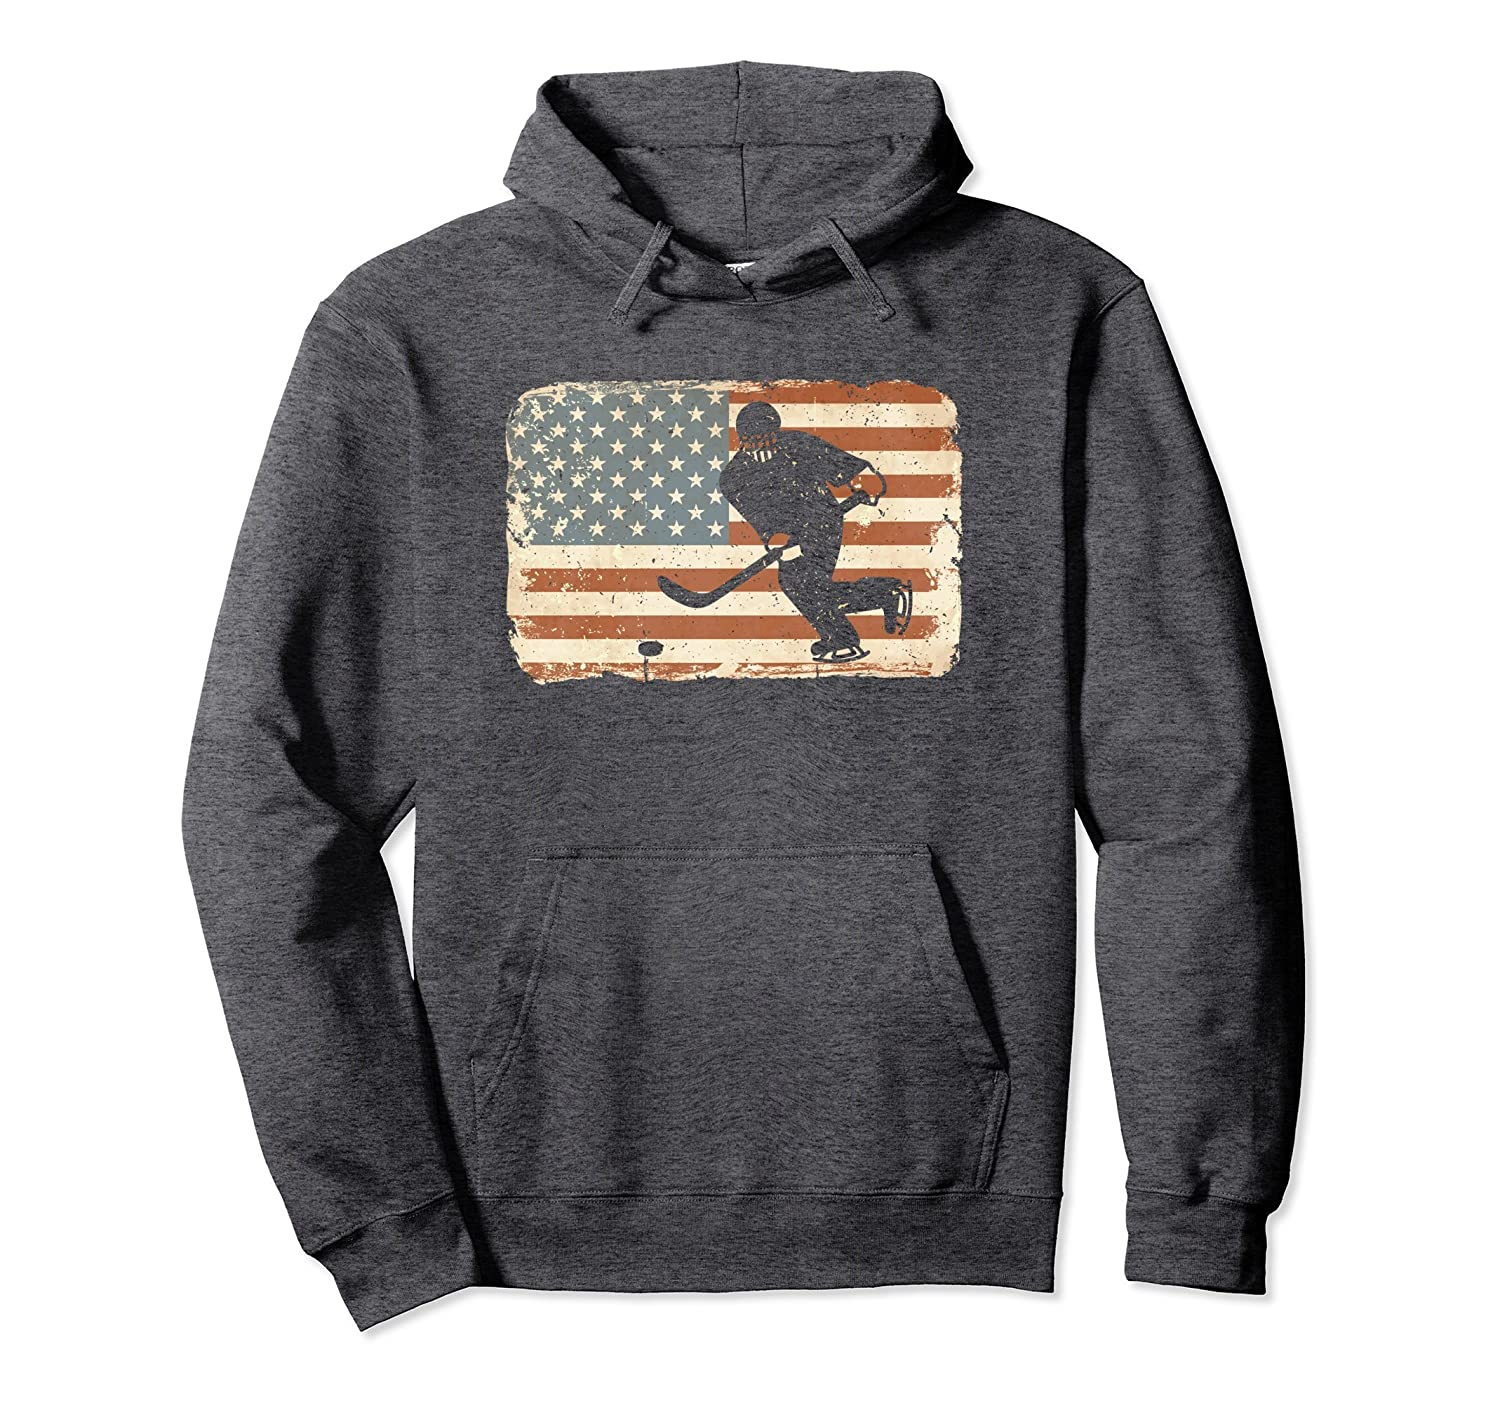 Vintage Ice Hockey Hoodie American Flag USA Sweatshirt